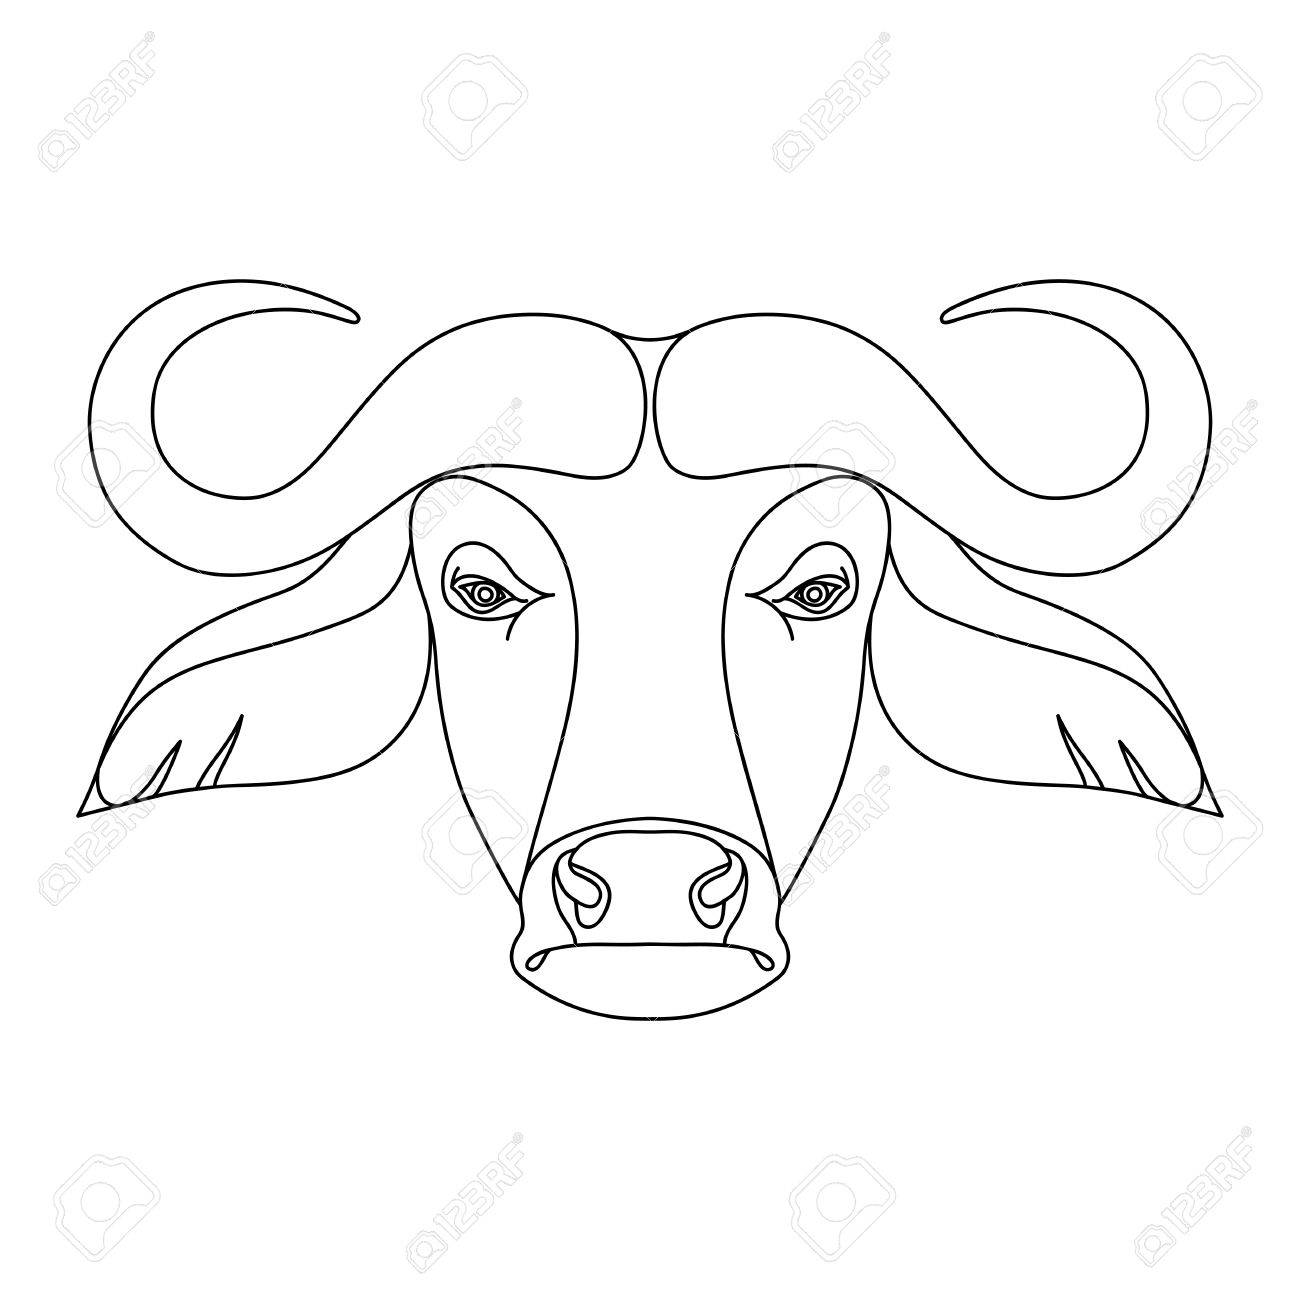 Isolated Black Outline Head Of Buffalo On White Background Line